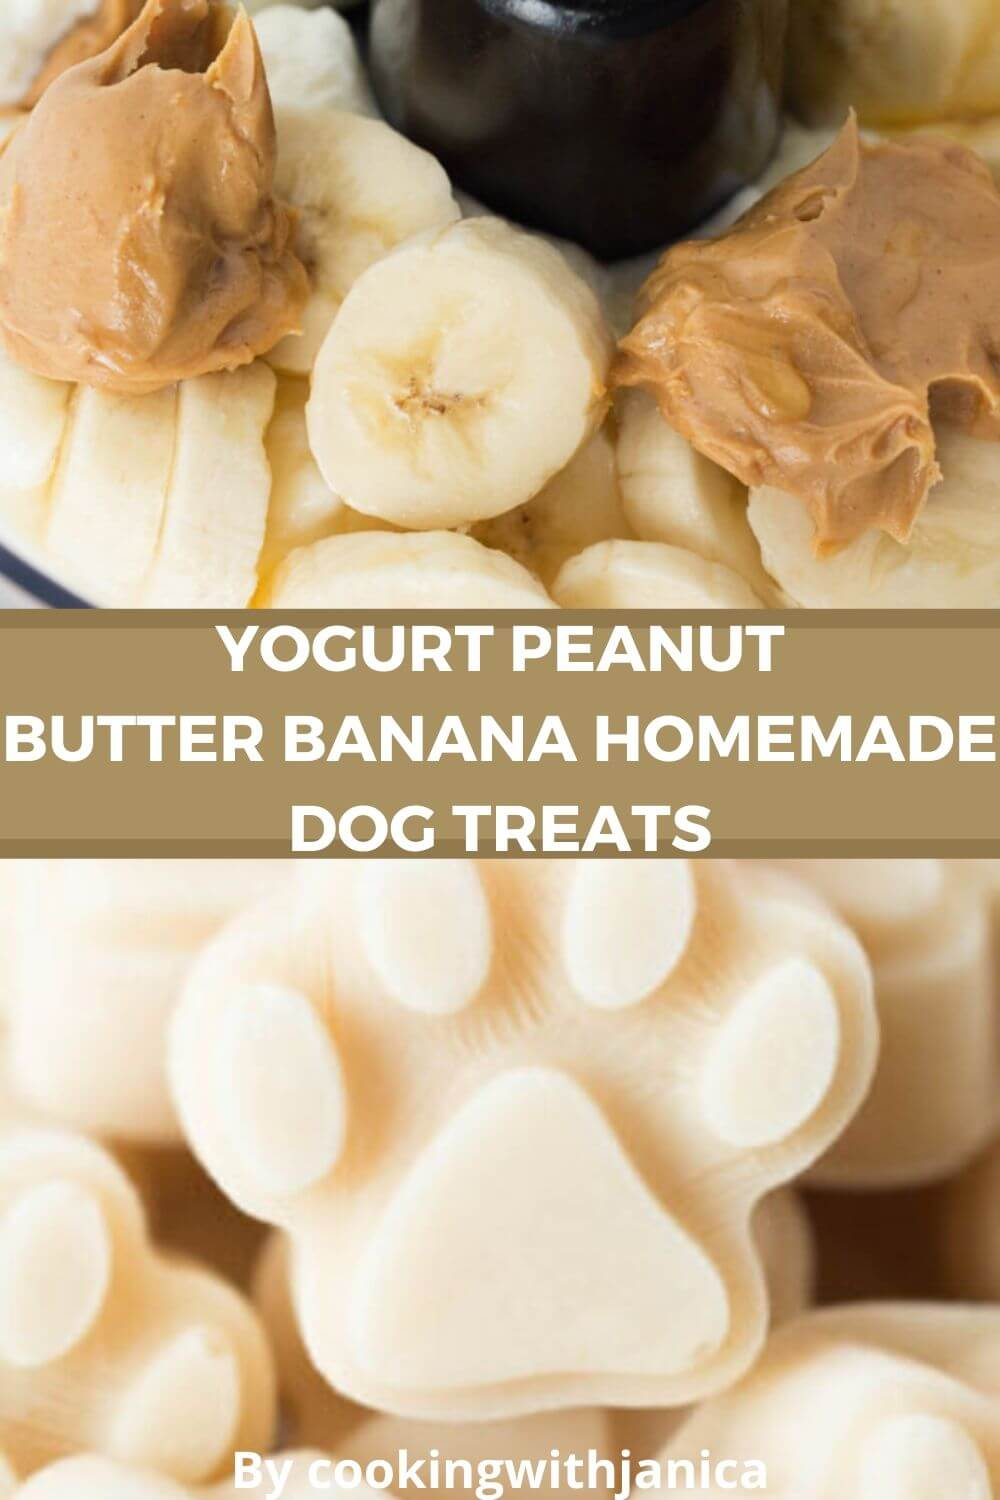 Yogurt Peanut Butter Banana Homemade Dog Treats